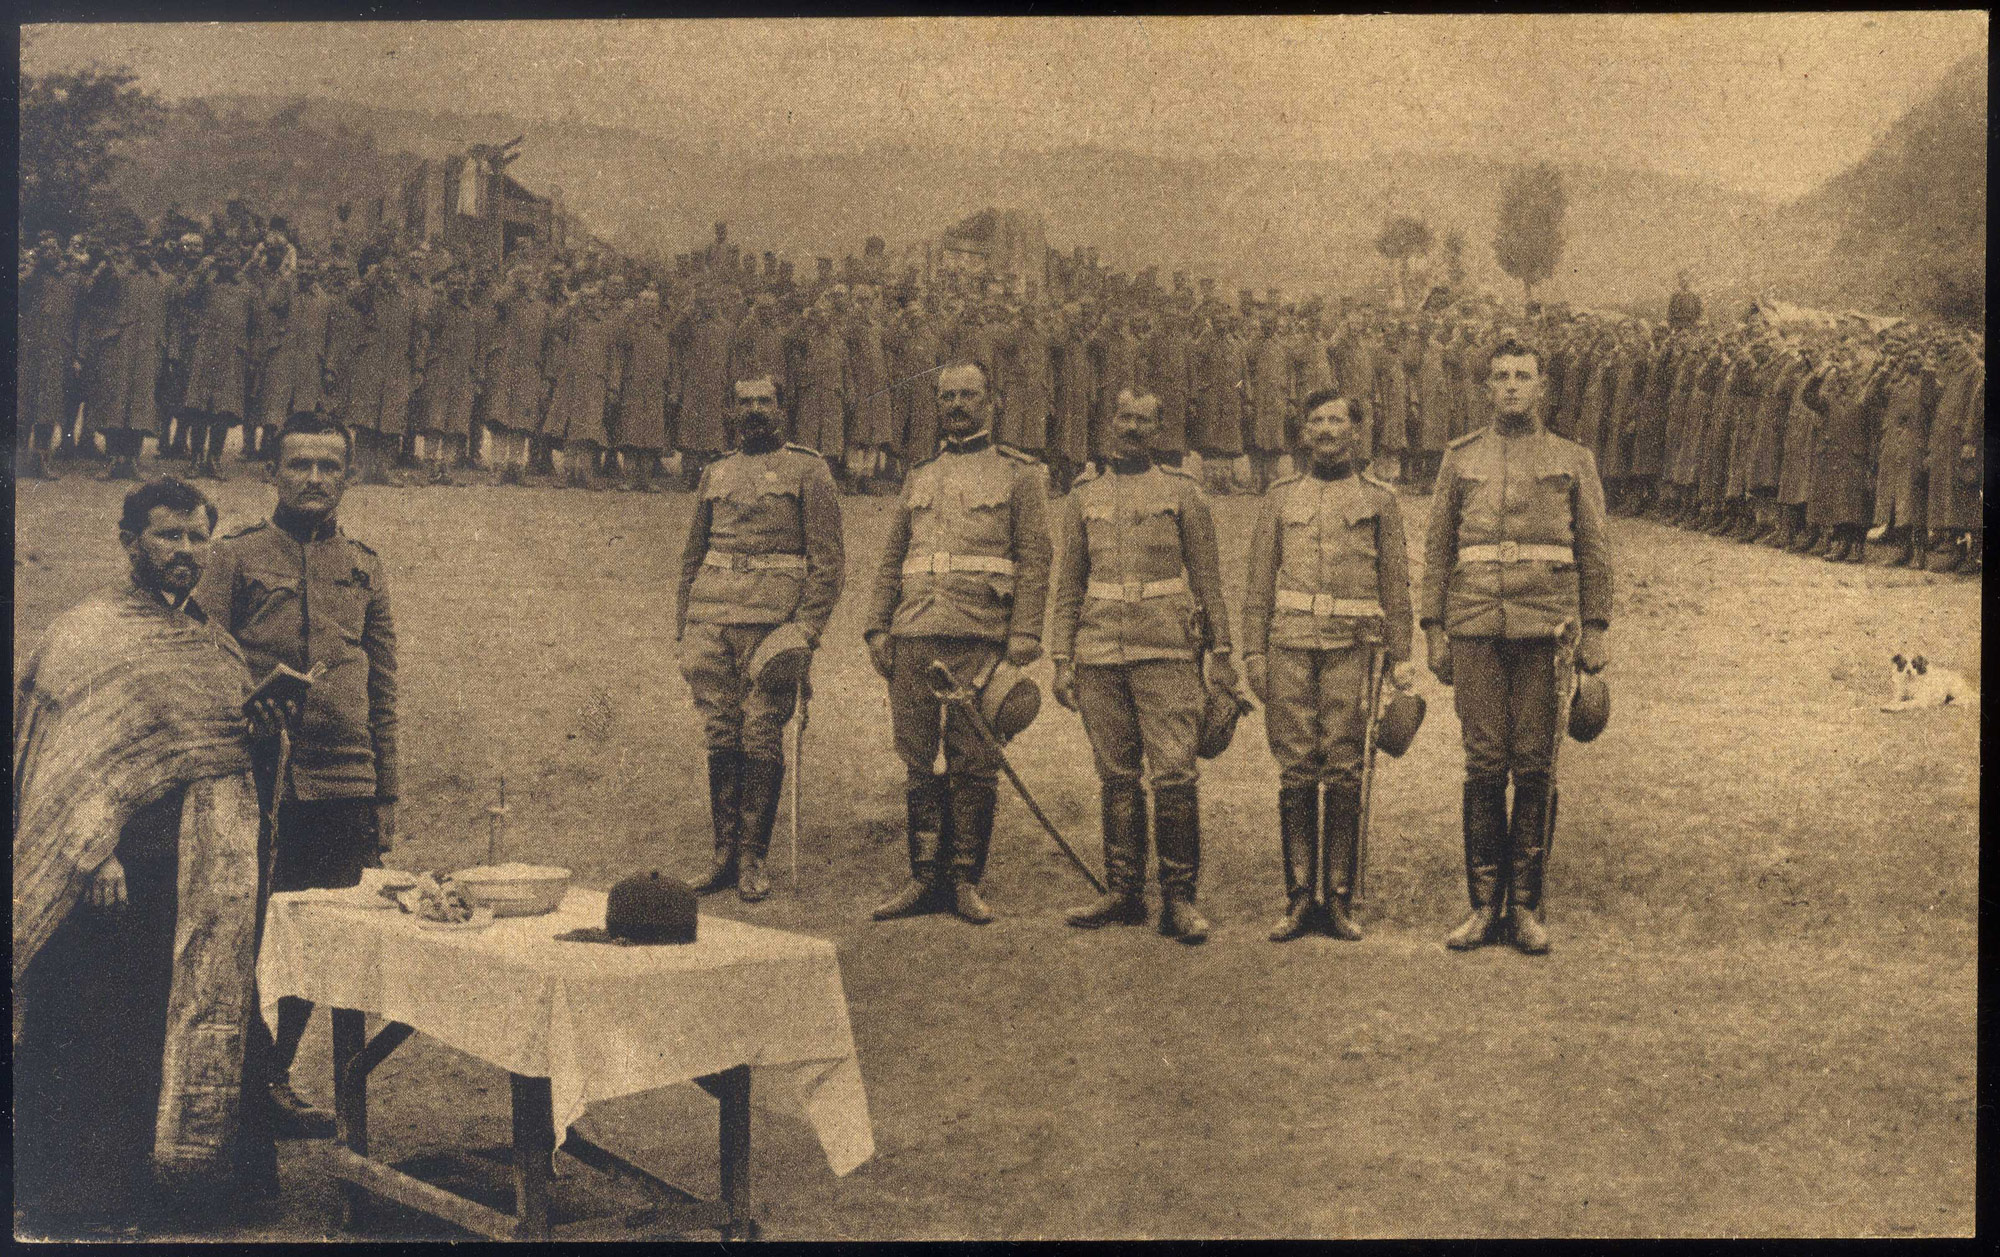 Oaths of soldiers from different religious groups